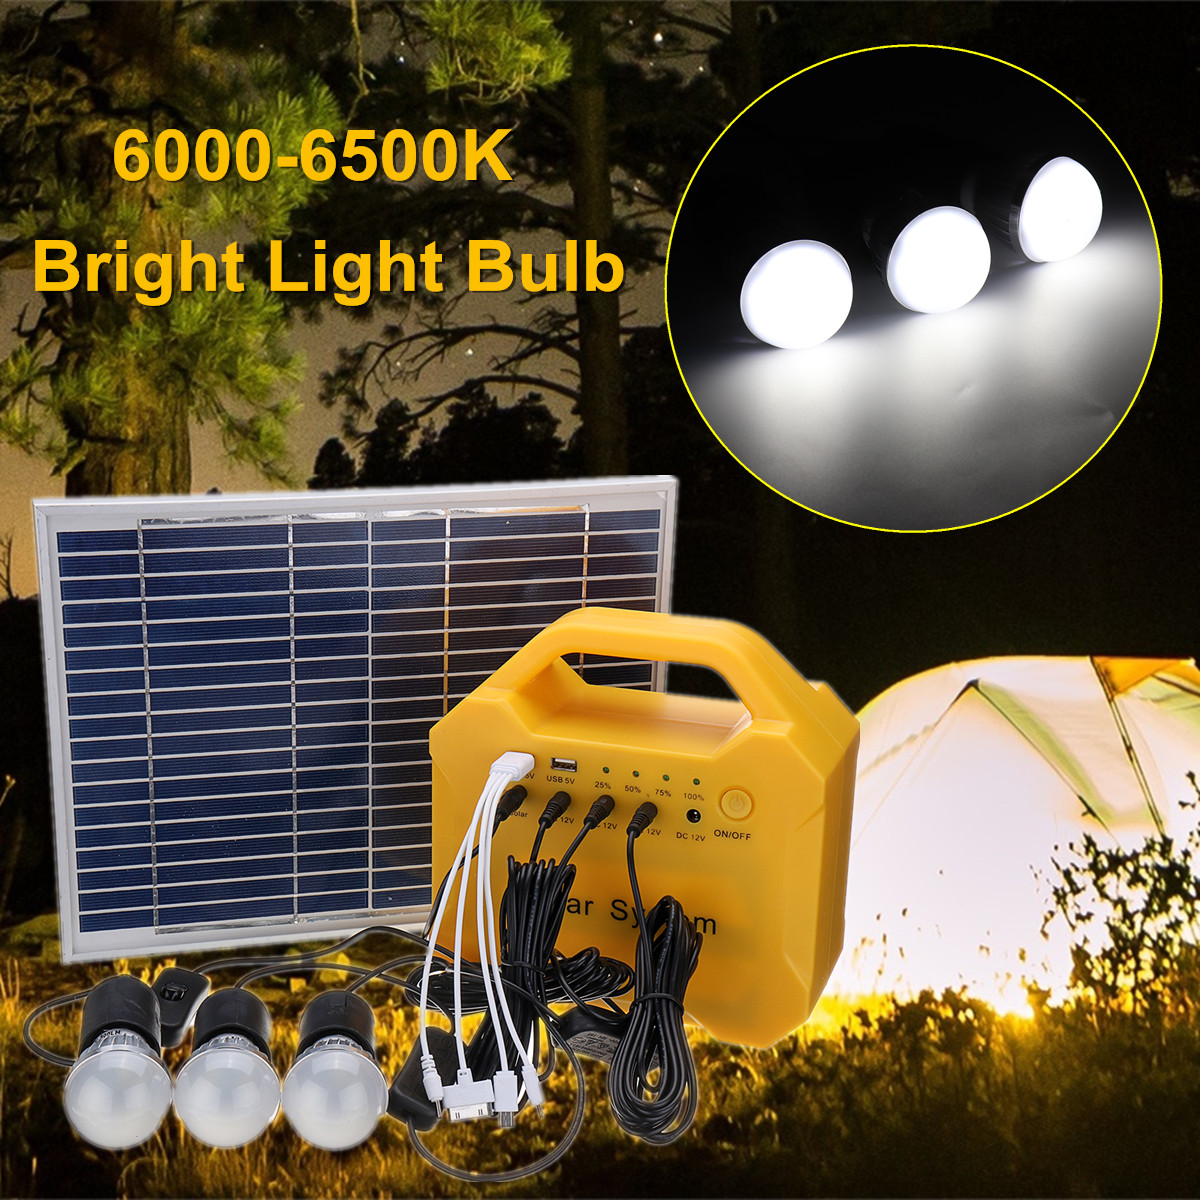 Solar Panel Power Storage Generator LED Light 18V USB Charge System Home Outdoor Large Capacity Battery Energy Saving Camping